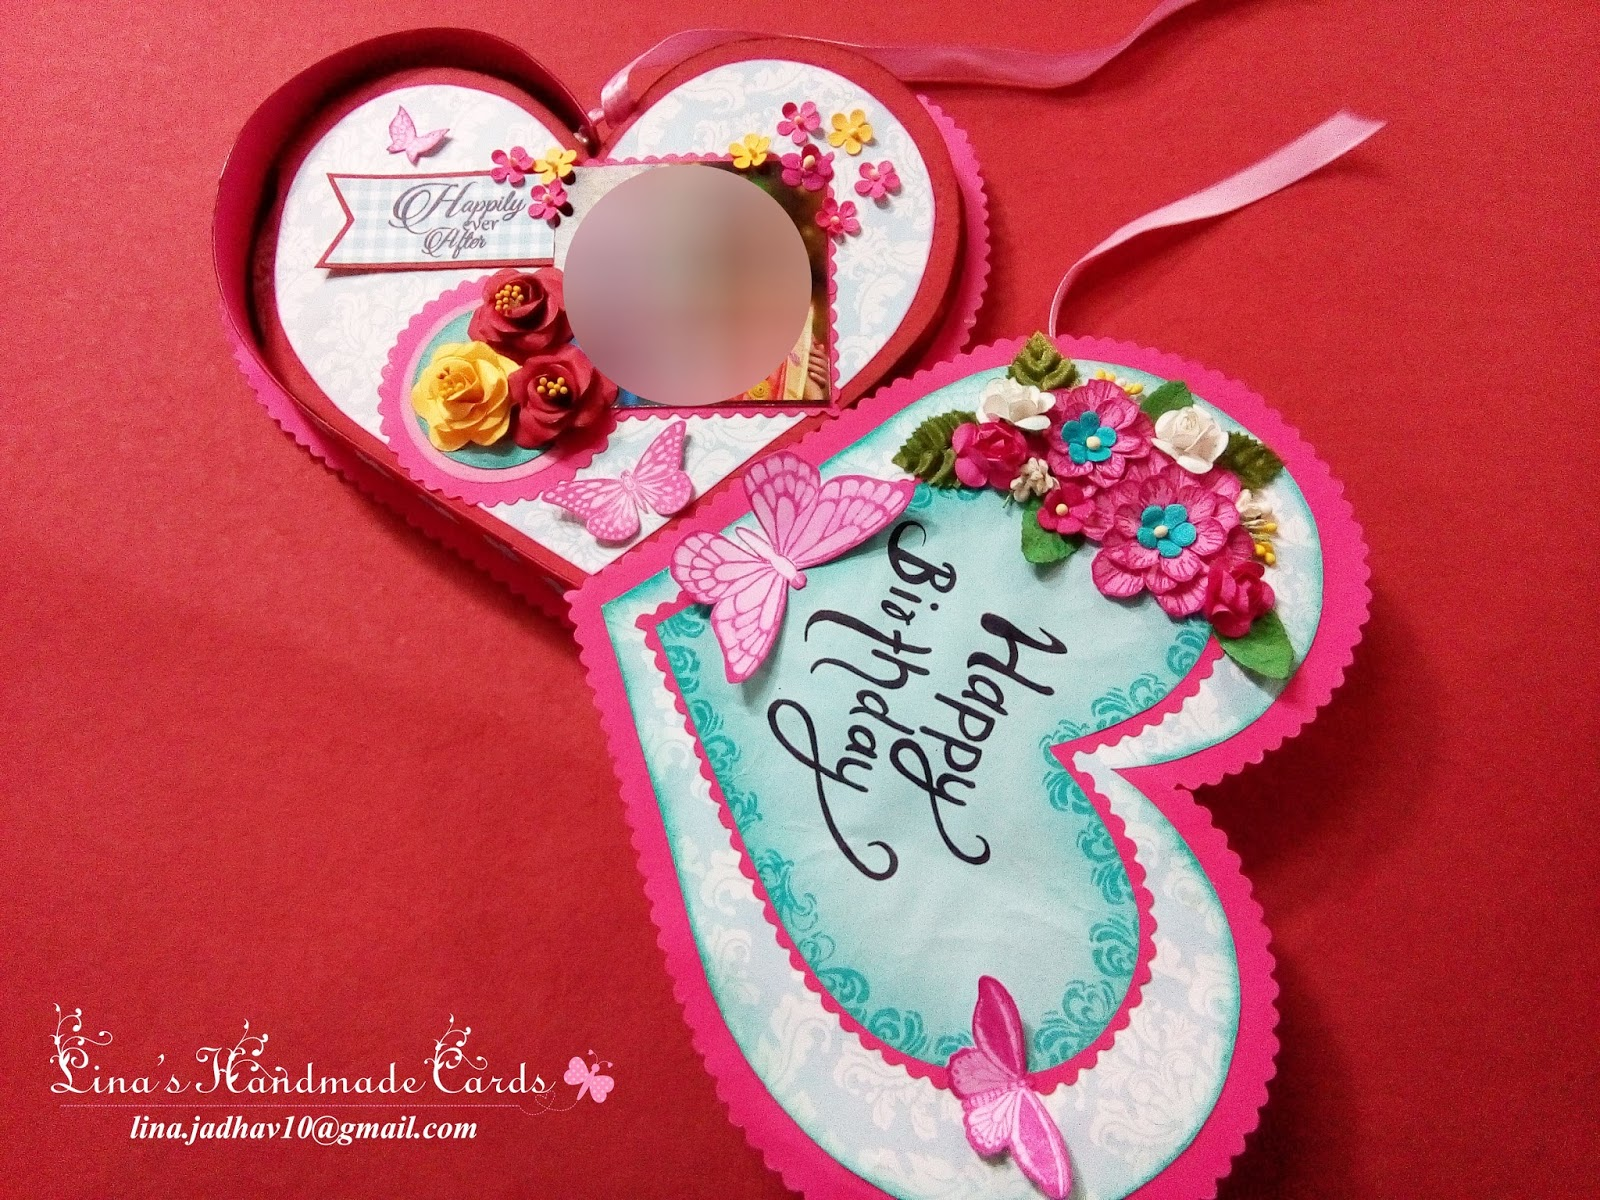 Linas Handmade Cards Two Heart Shaped Cards